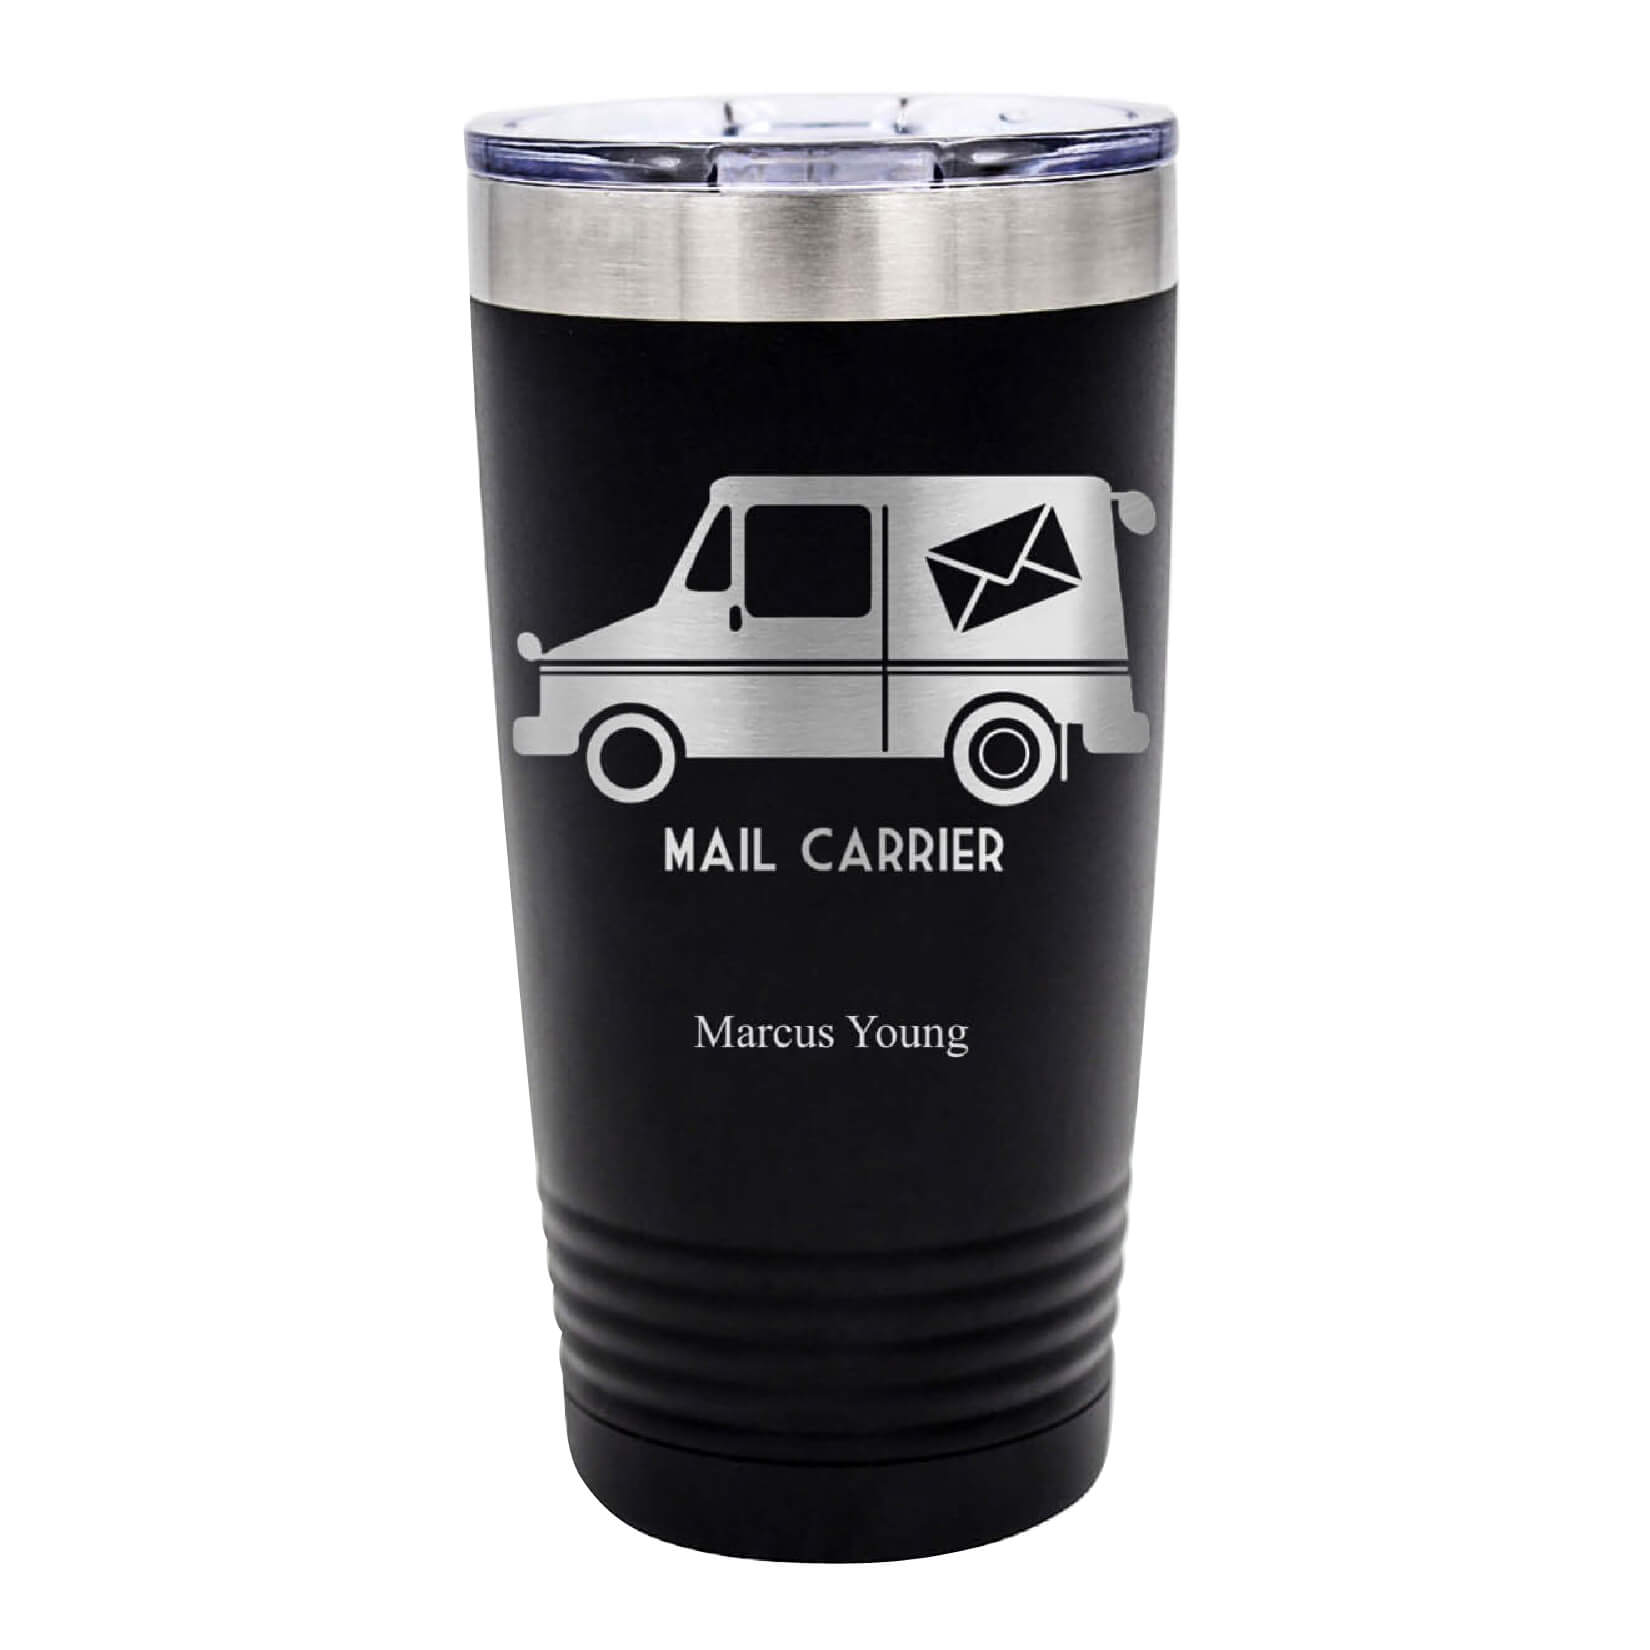 Mail Carrier Tumbler